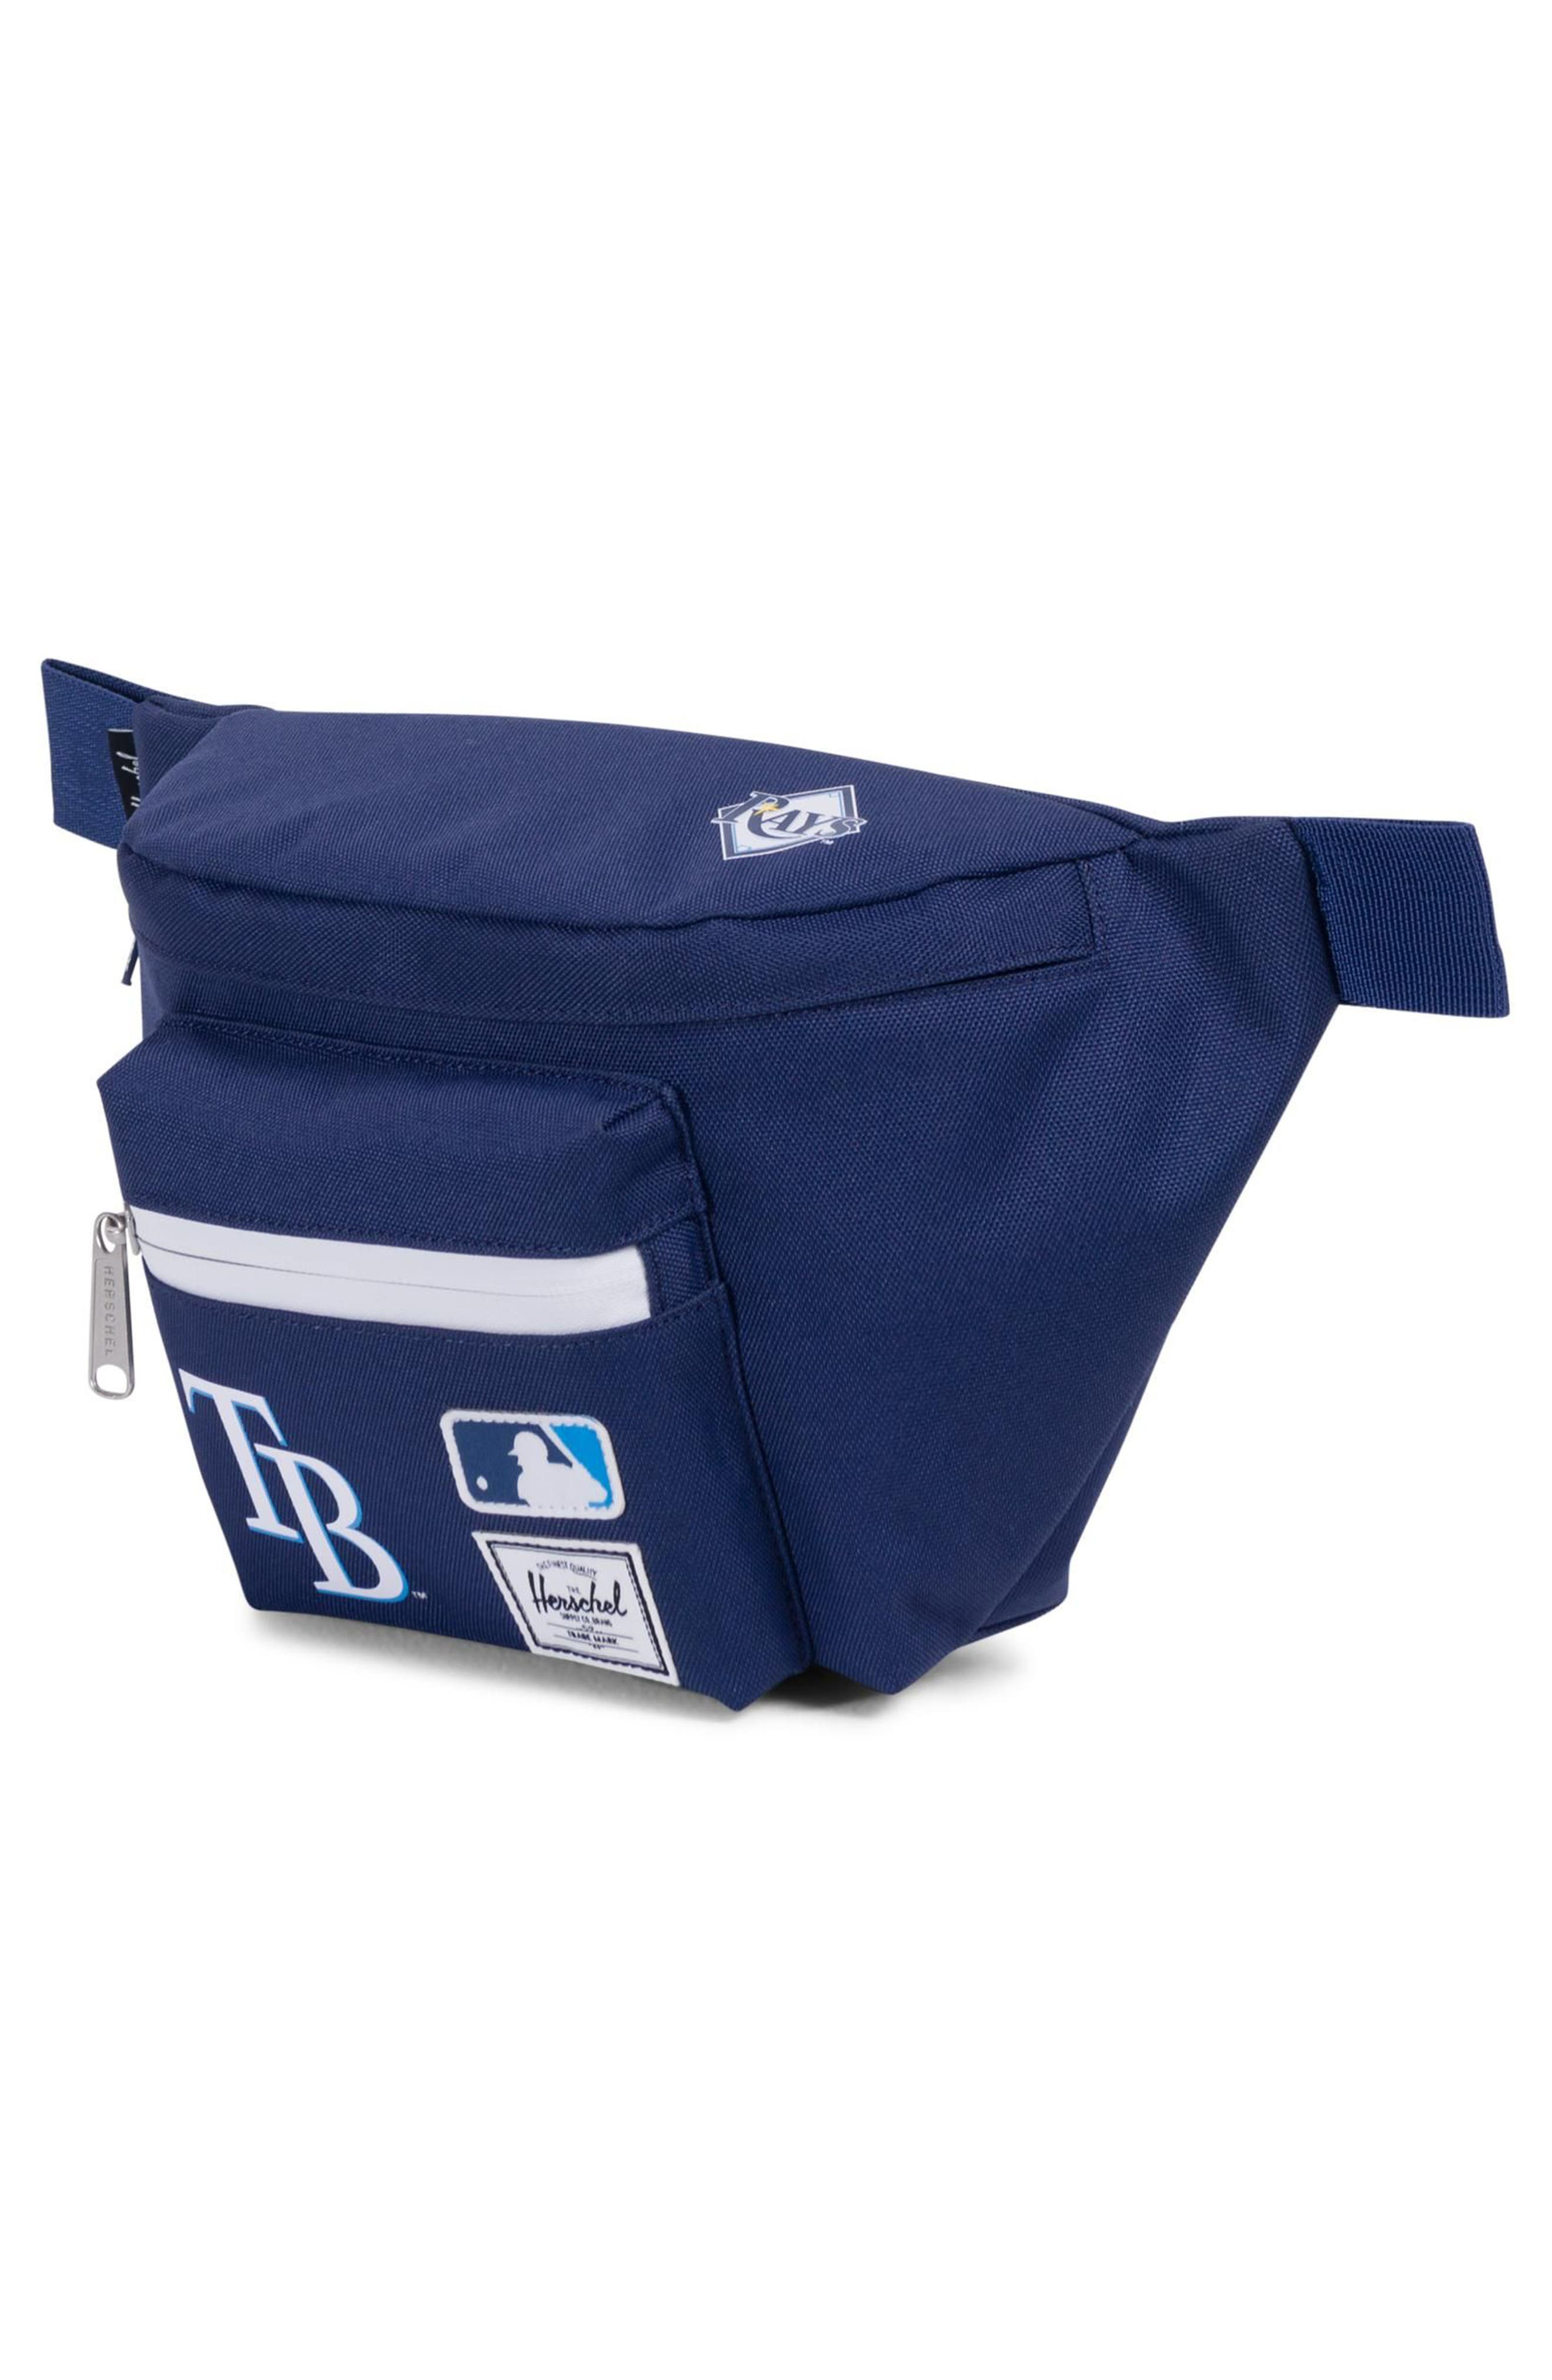 MLB American League Hip Pack,                             Alternate thumbnail 2, color,                             Tampa Bay Rays